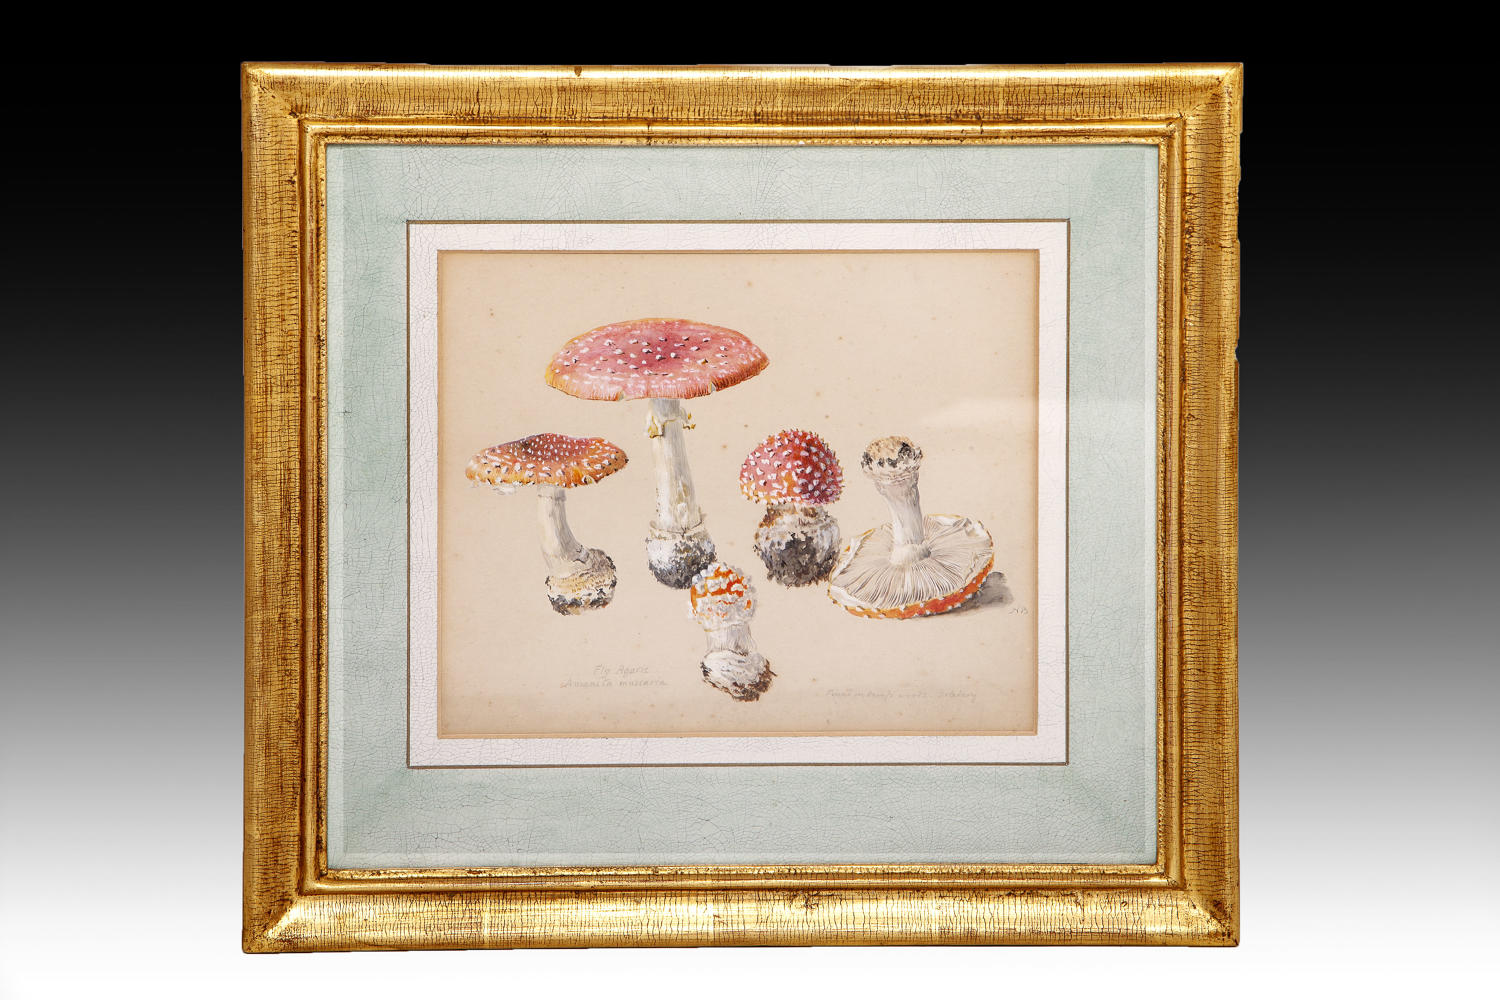 An early 19th century watercolour of toadstools